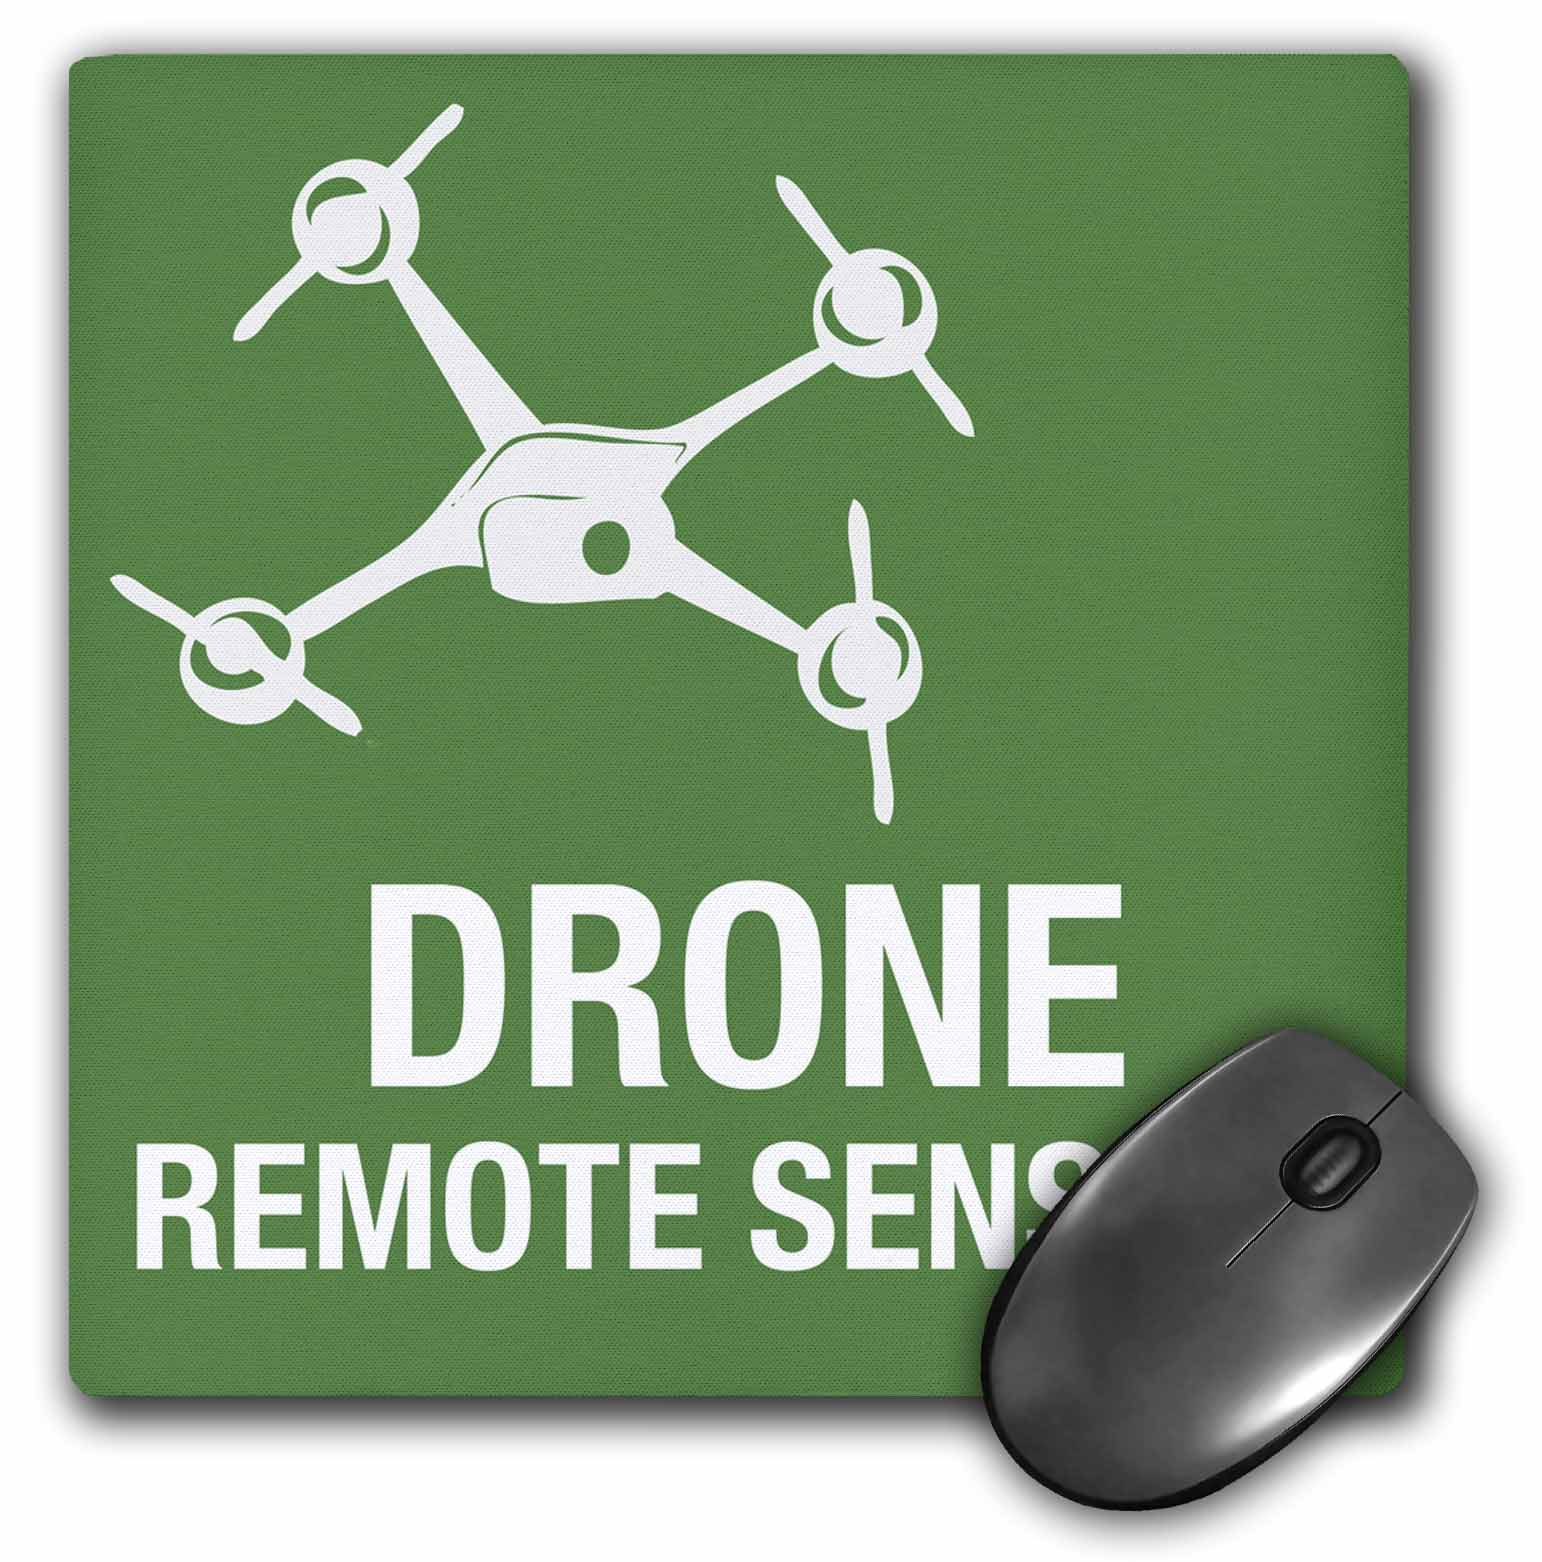 Deals 3dRose Big Green Drone flying with Remote Sensing, Mouse Pad, 8 by 8 inches Before Special Offer Ends